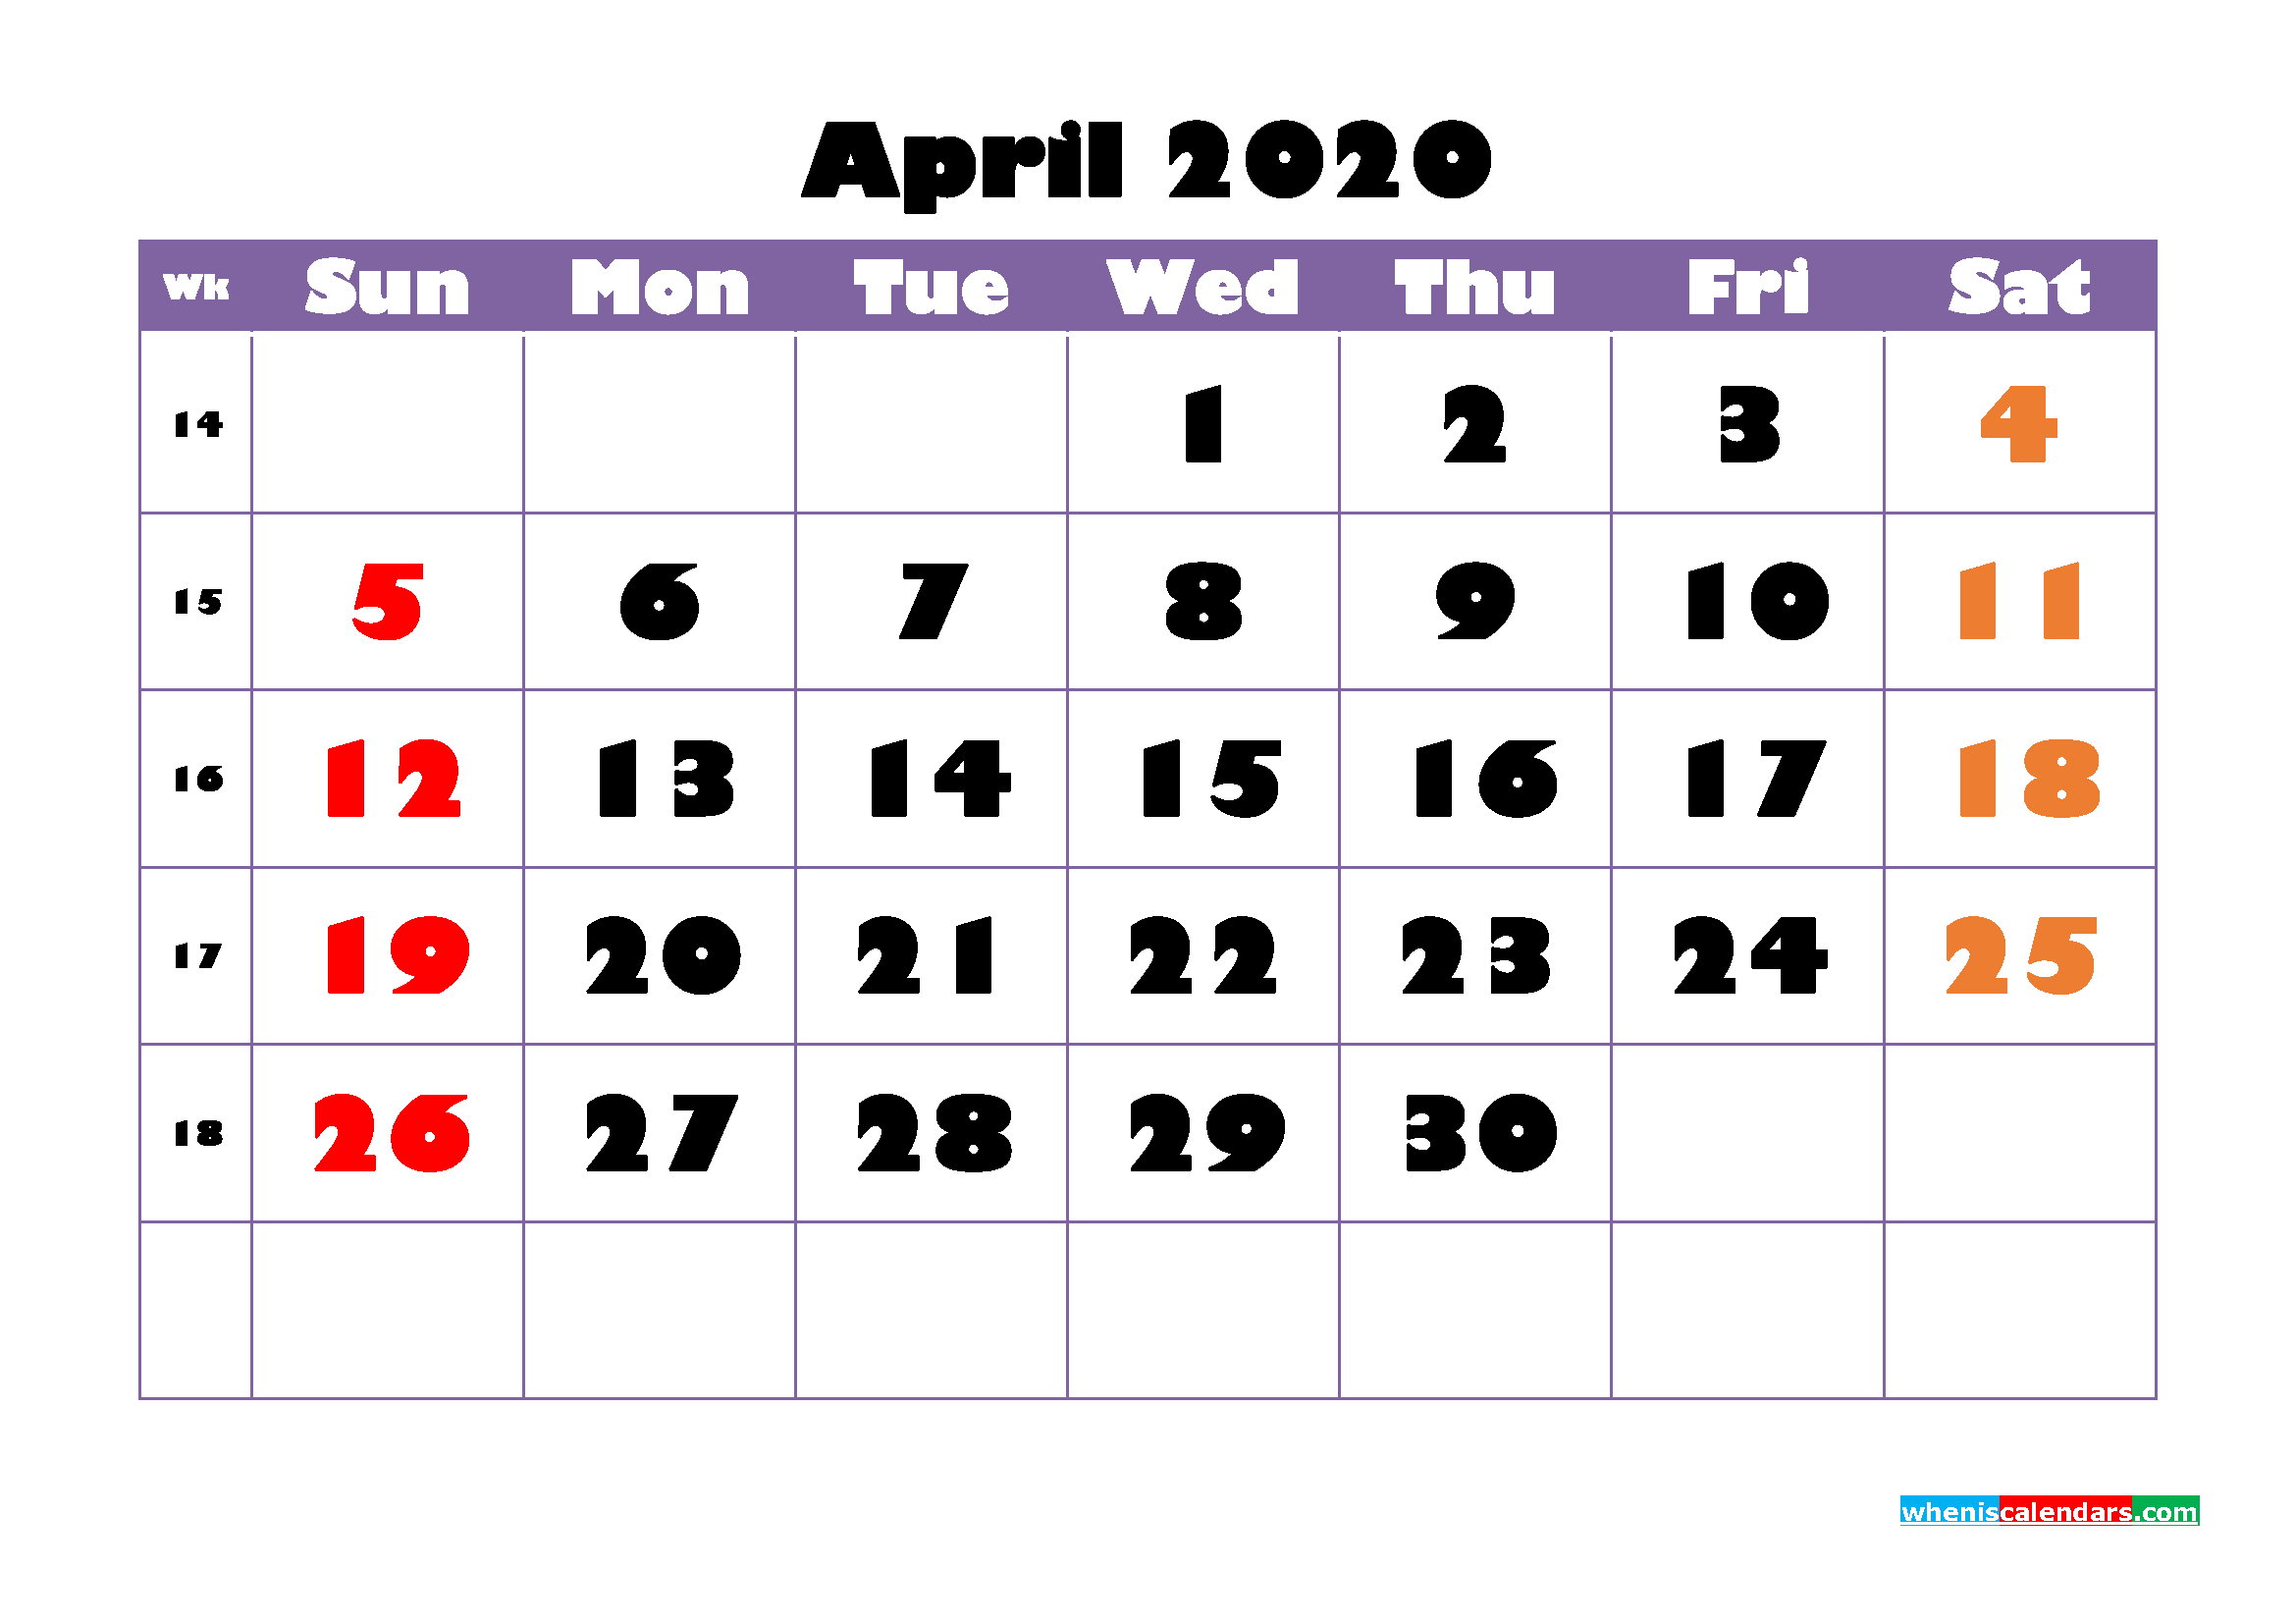 Free Printable April 2020 Calendar - No.m20b748